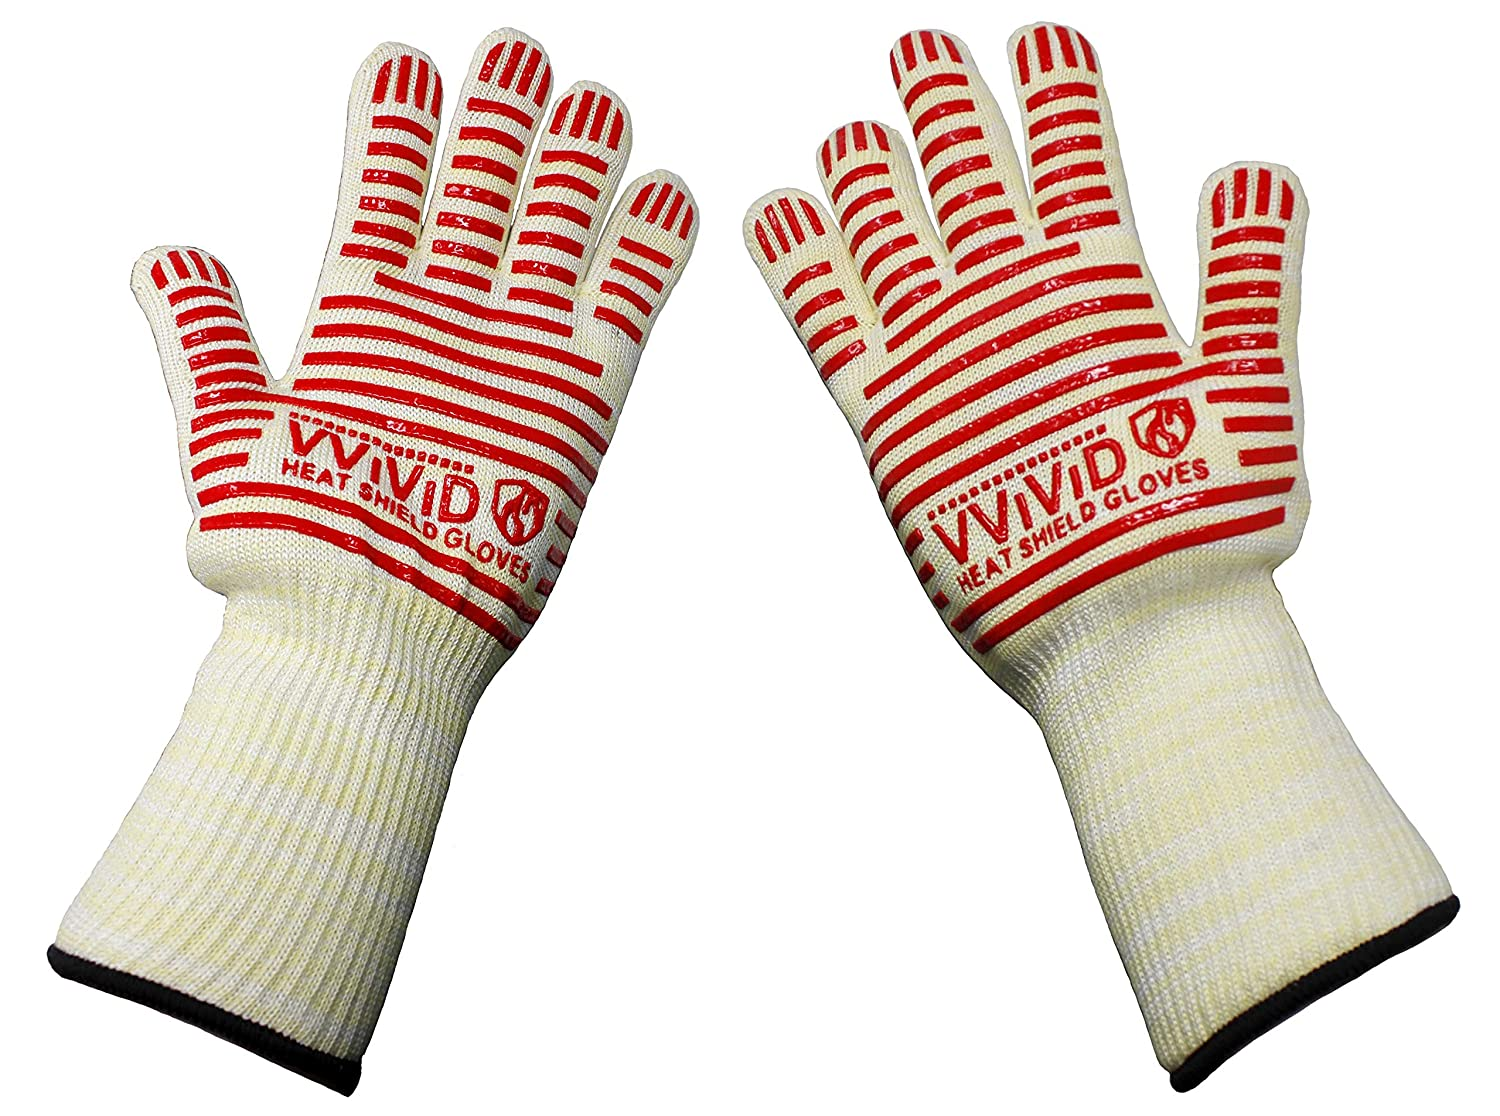 VViViD Heavy-Duty High Heat Resistance Silicone Grip Long Protective Gloves for Ovens, Grills & Smokers